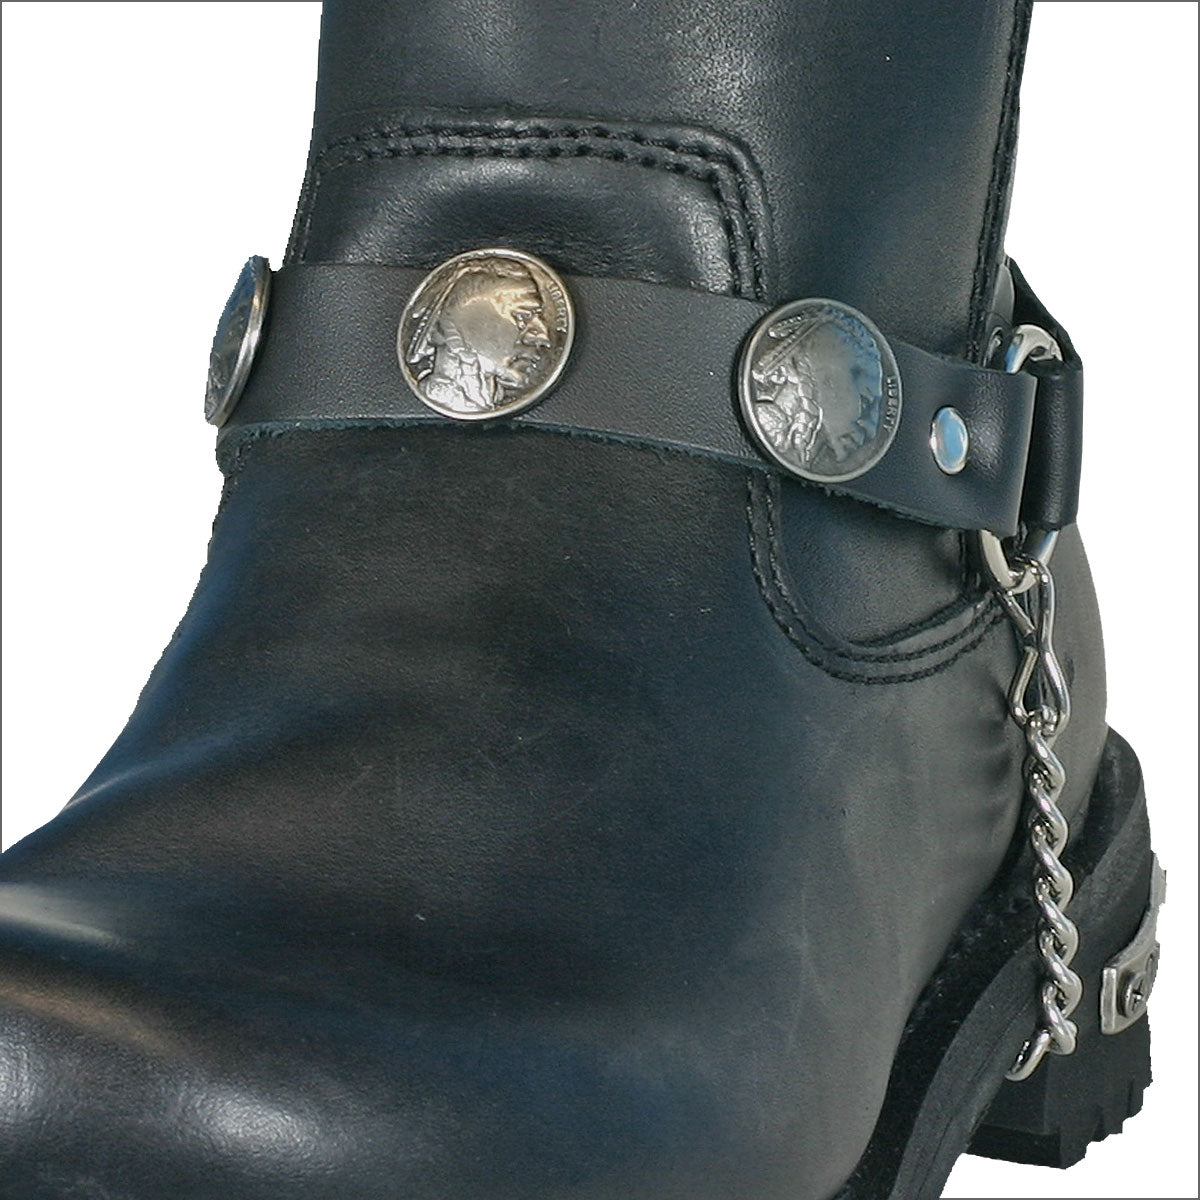 Hot Leathers Indian Head Nickel Boot Chain